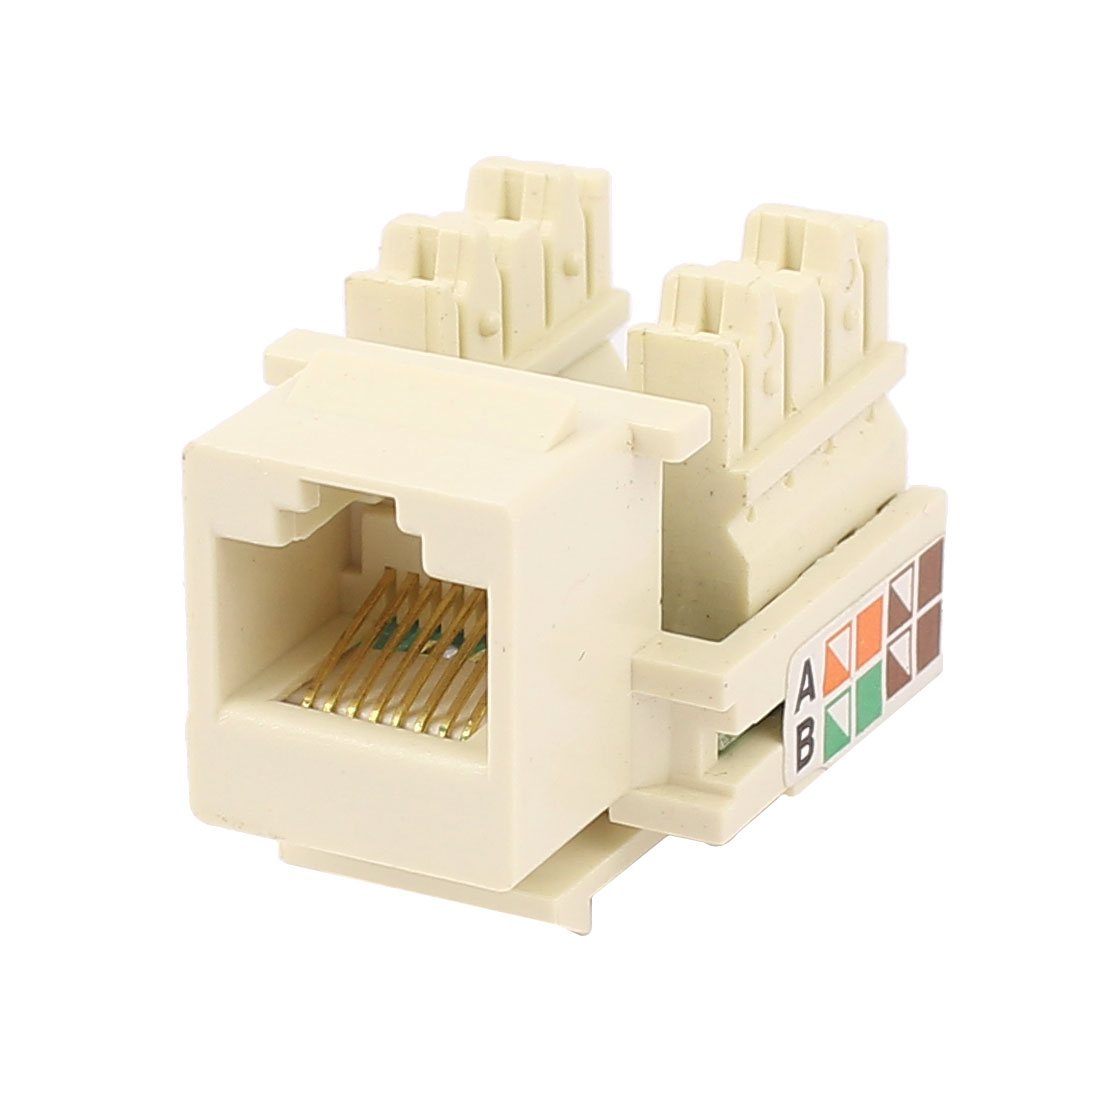 Newtwork Ethernet Lan Cable Joiner Connector RJ45 CAT5E Extender Plug